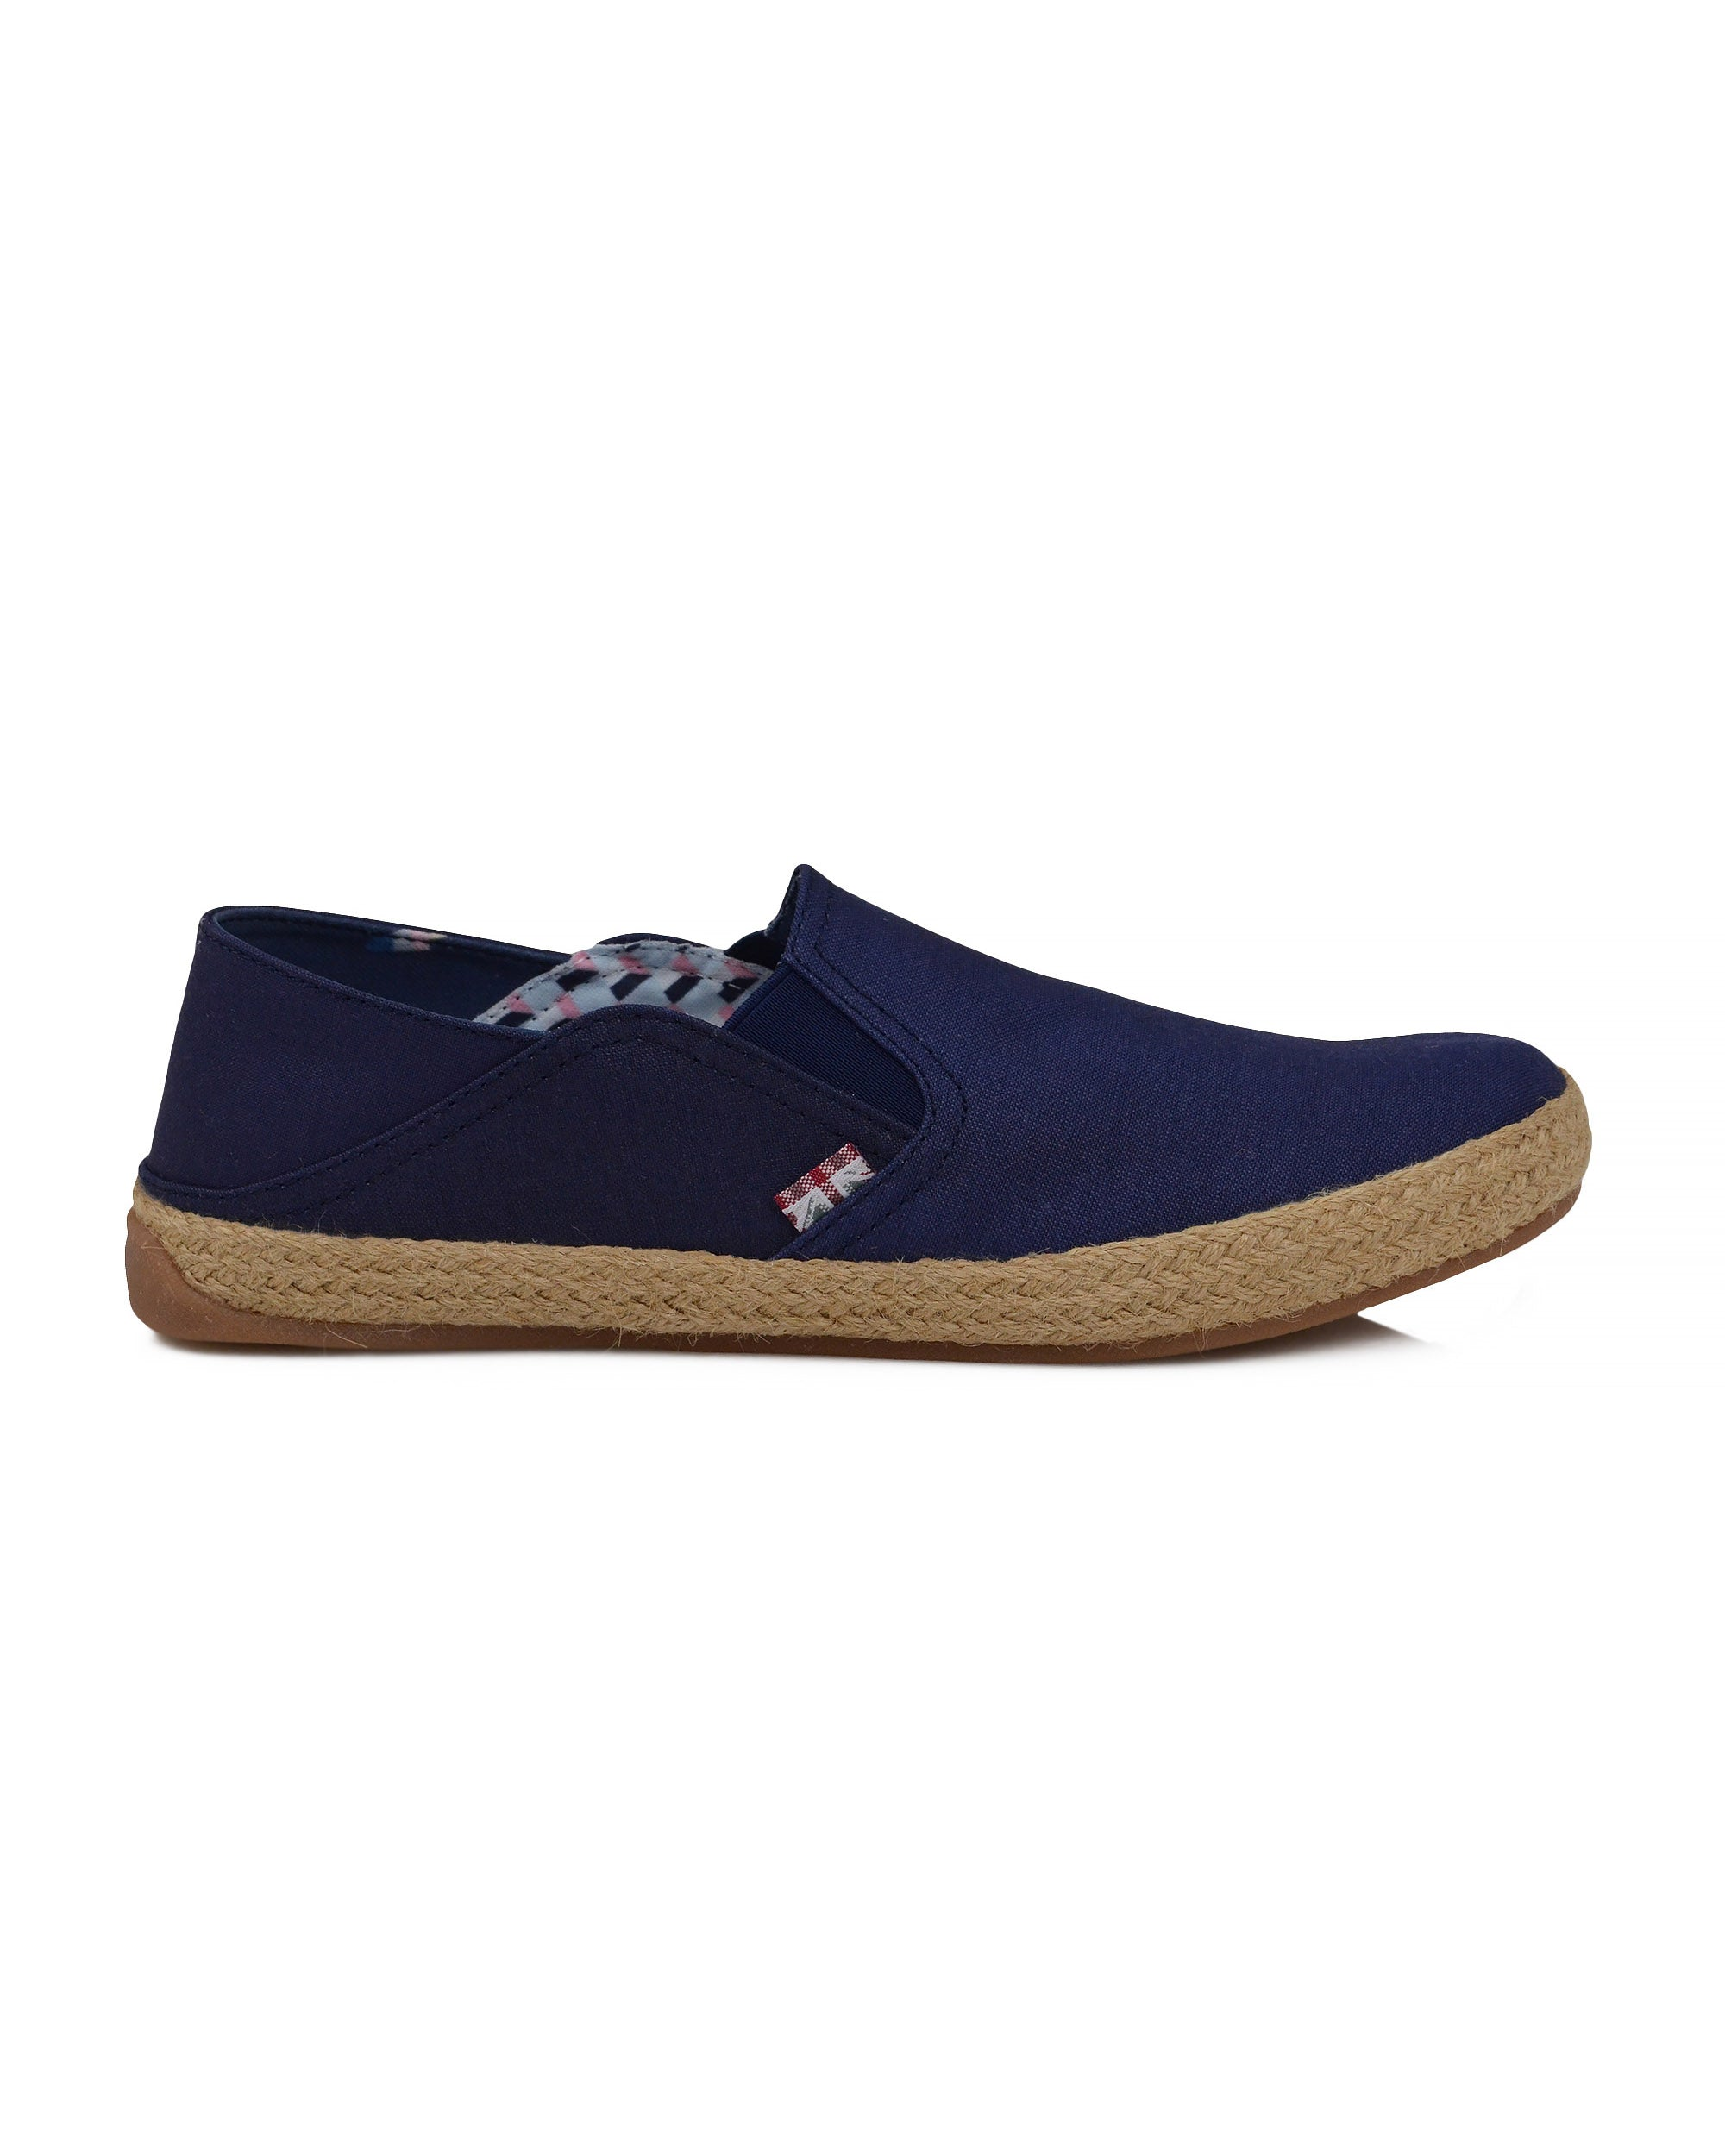 Prill Heel Slip-On  - Navy Canvas